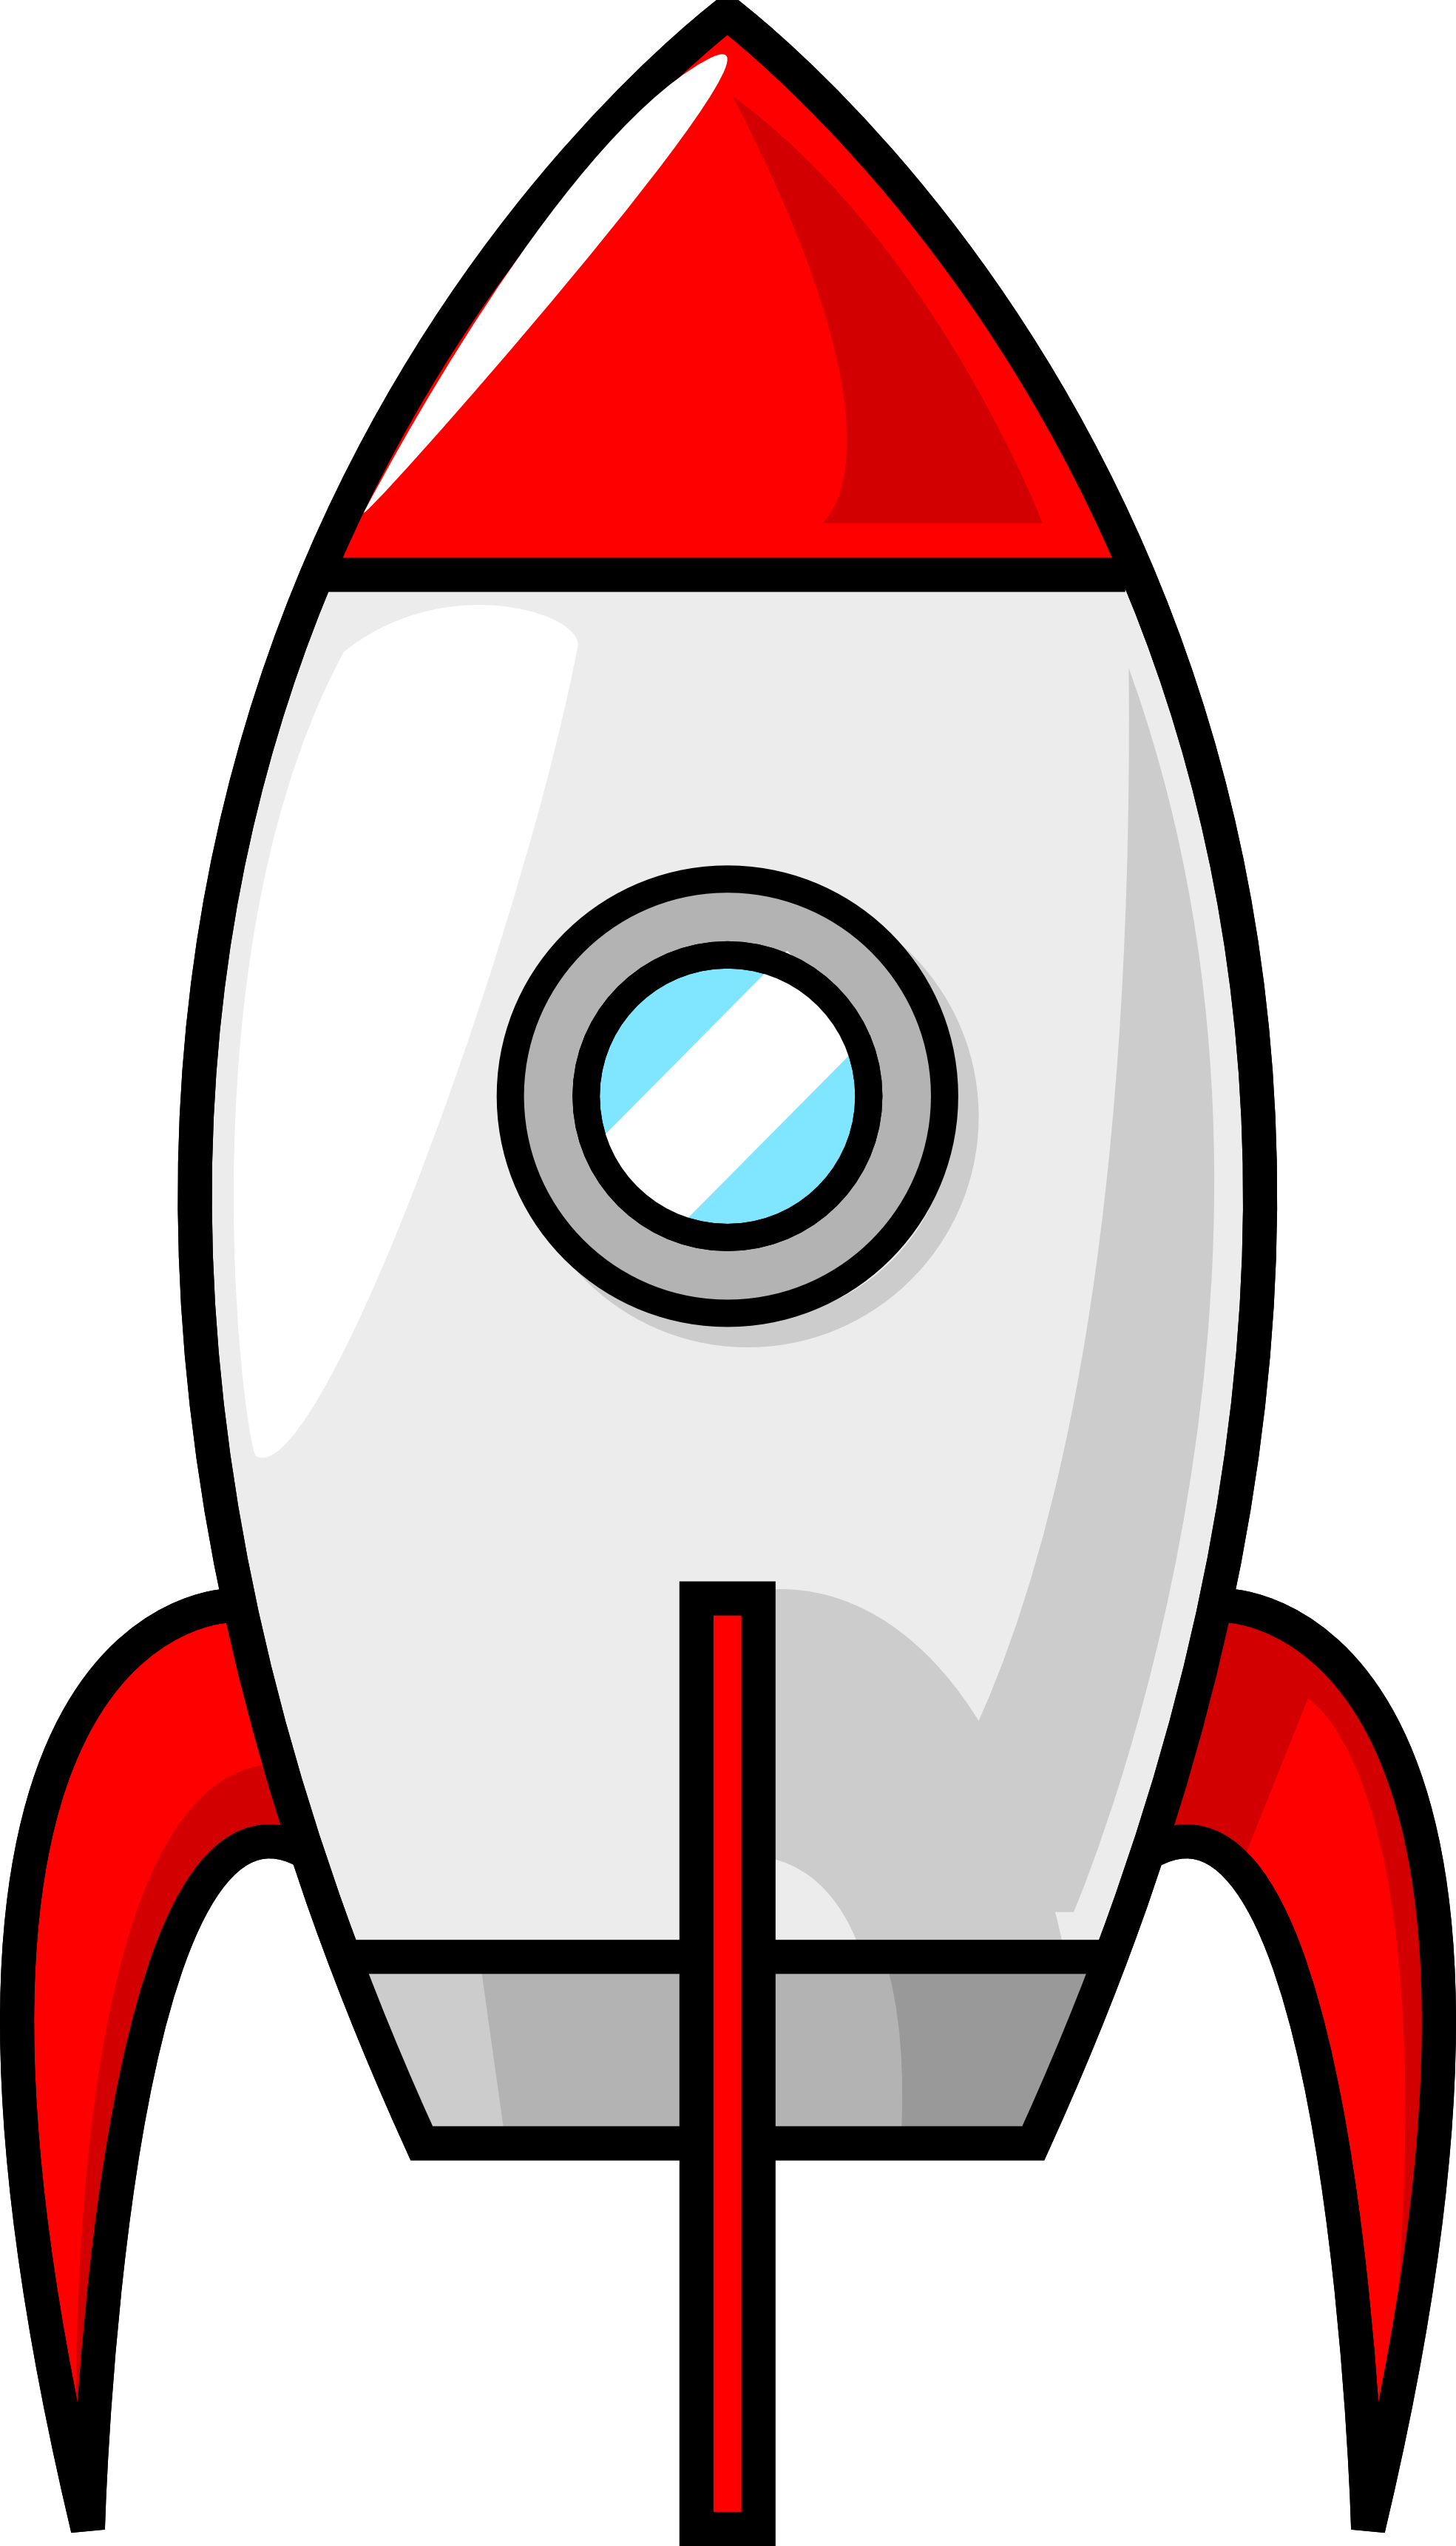 Space ship clip art png. Rocket pinterest and craft